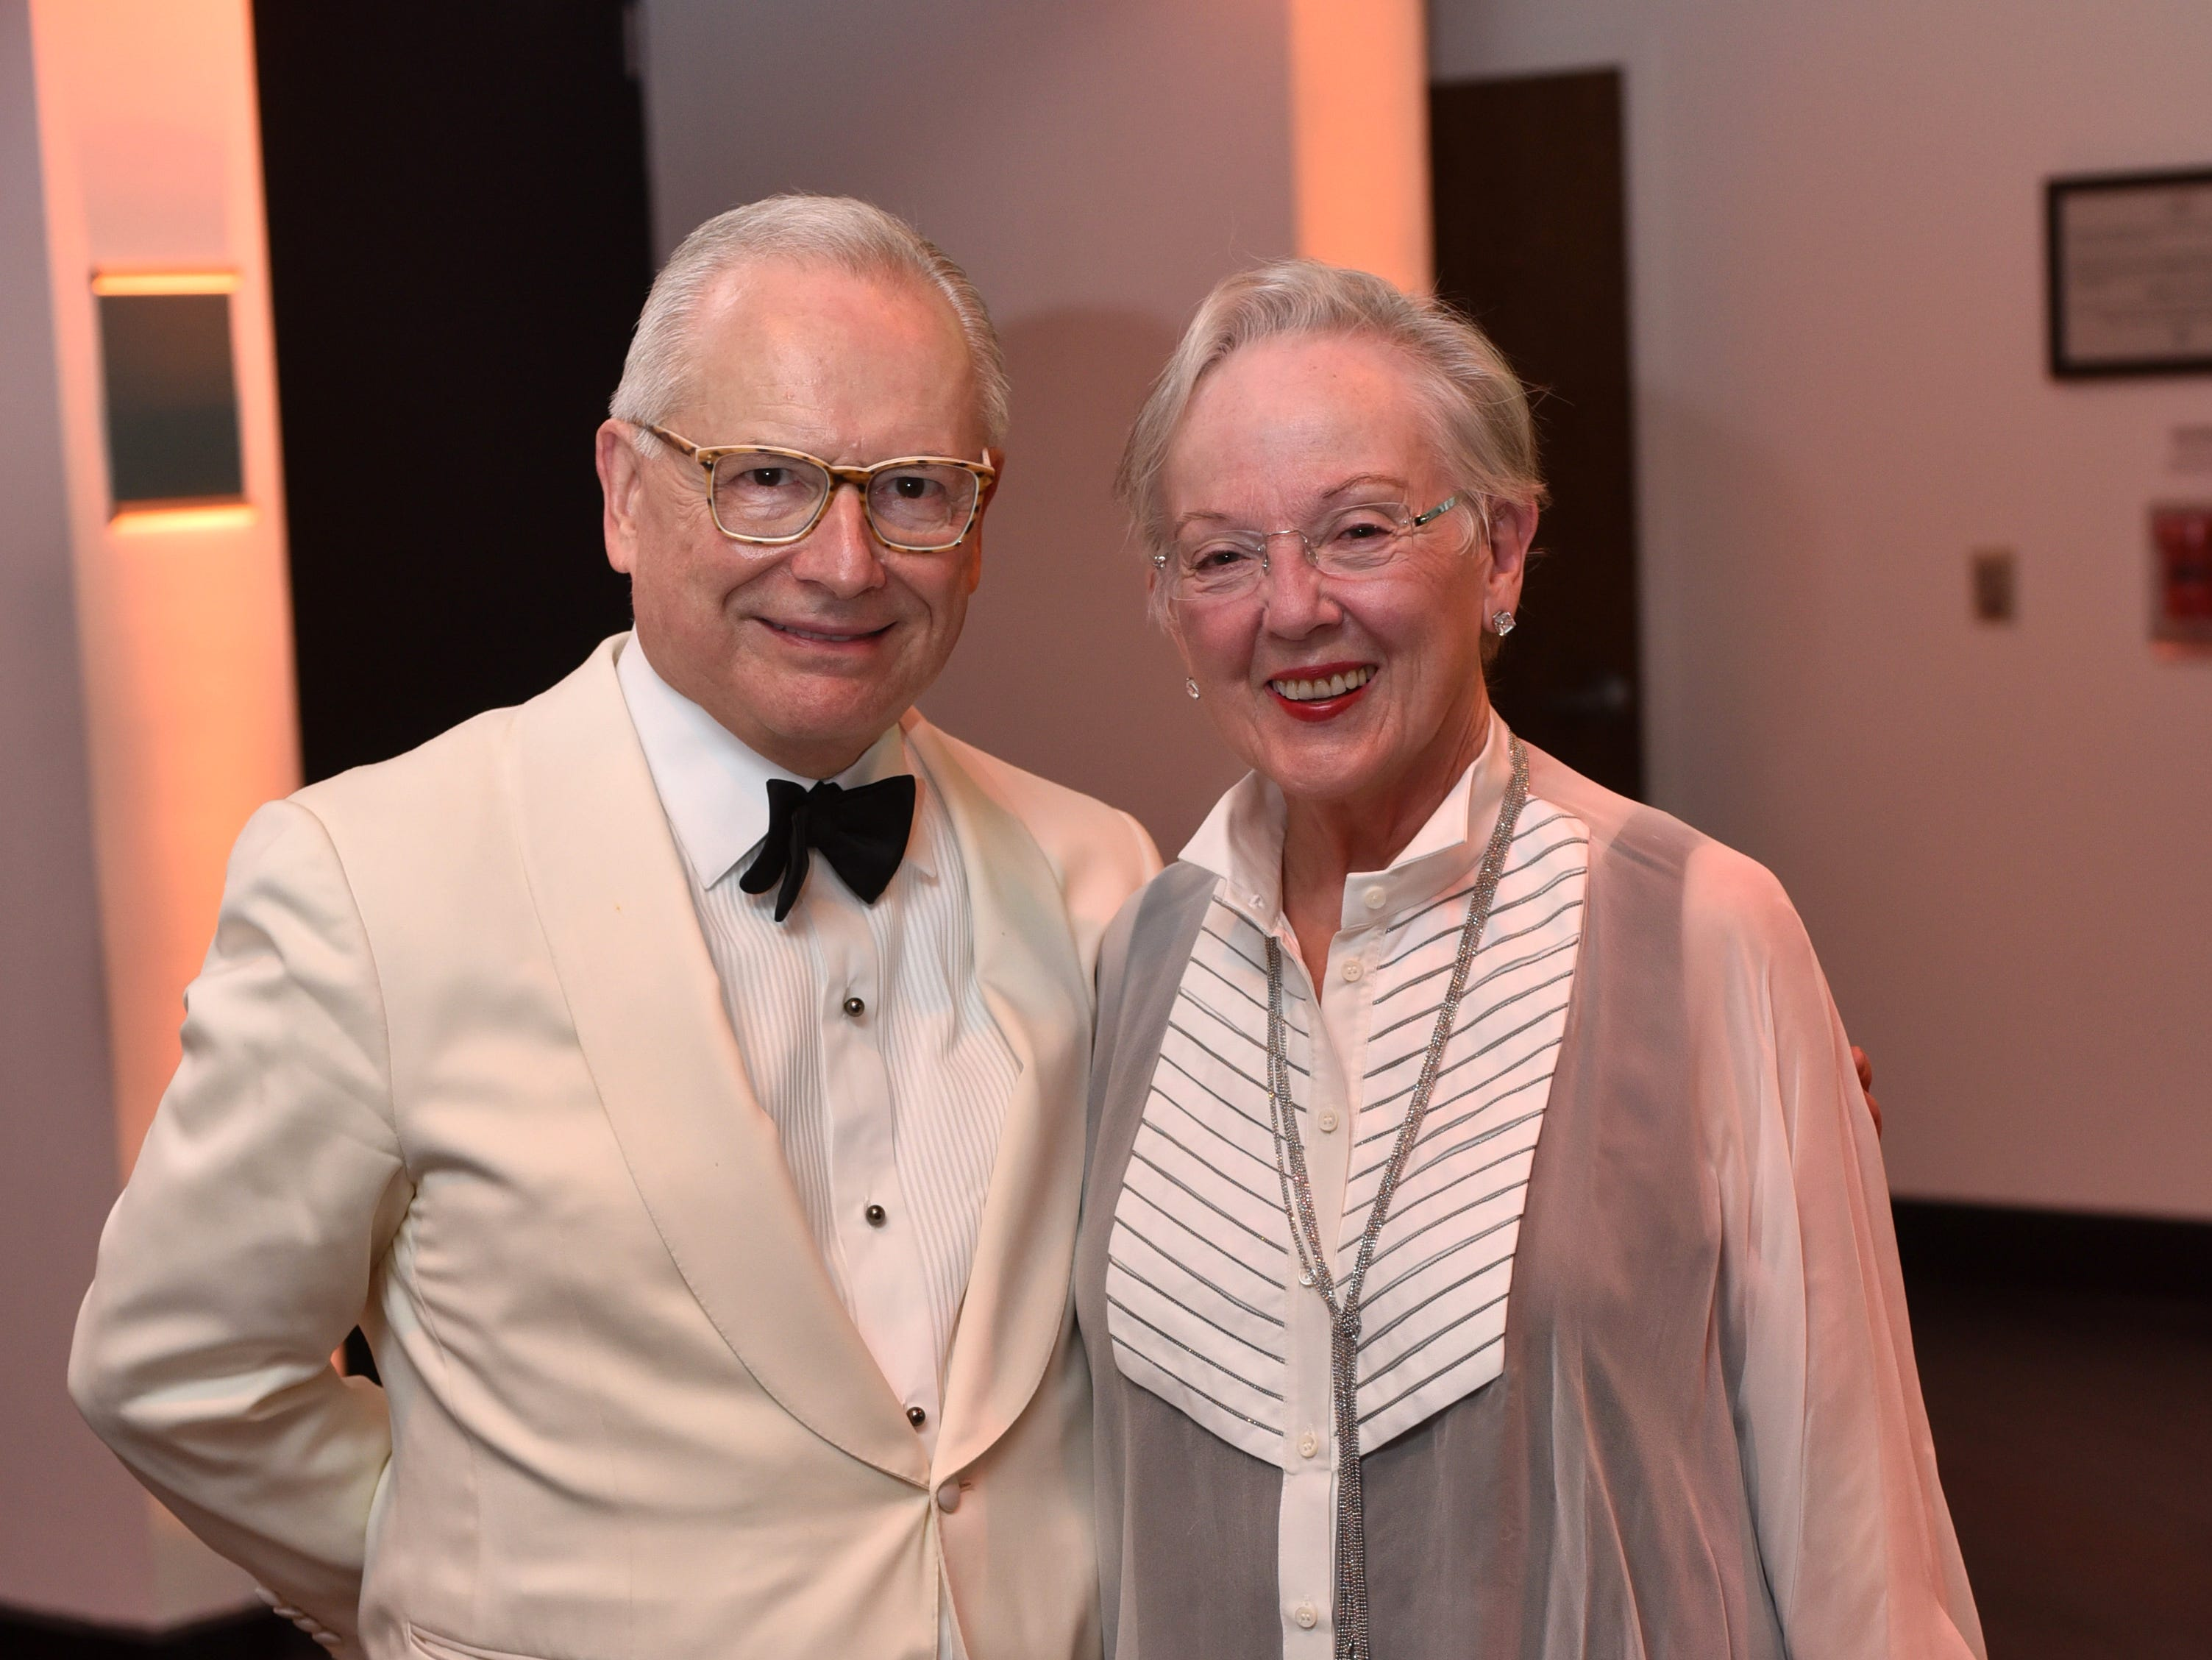 Jack and Barbara Bovender at the 18th annual TPAC Gala on Aug. 25.